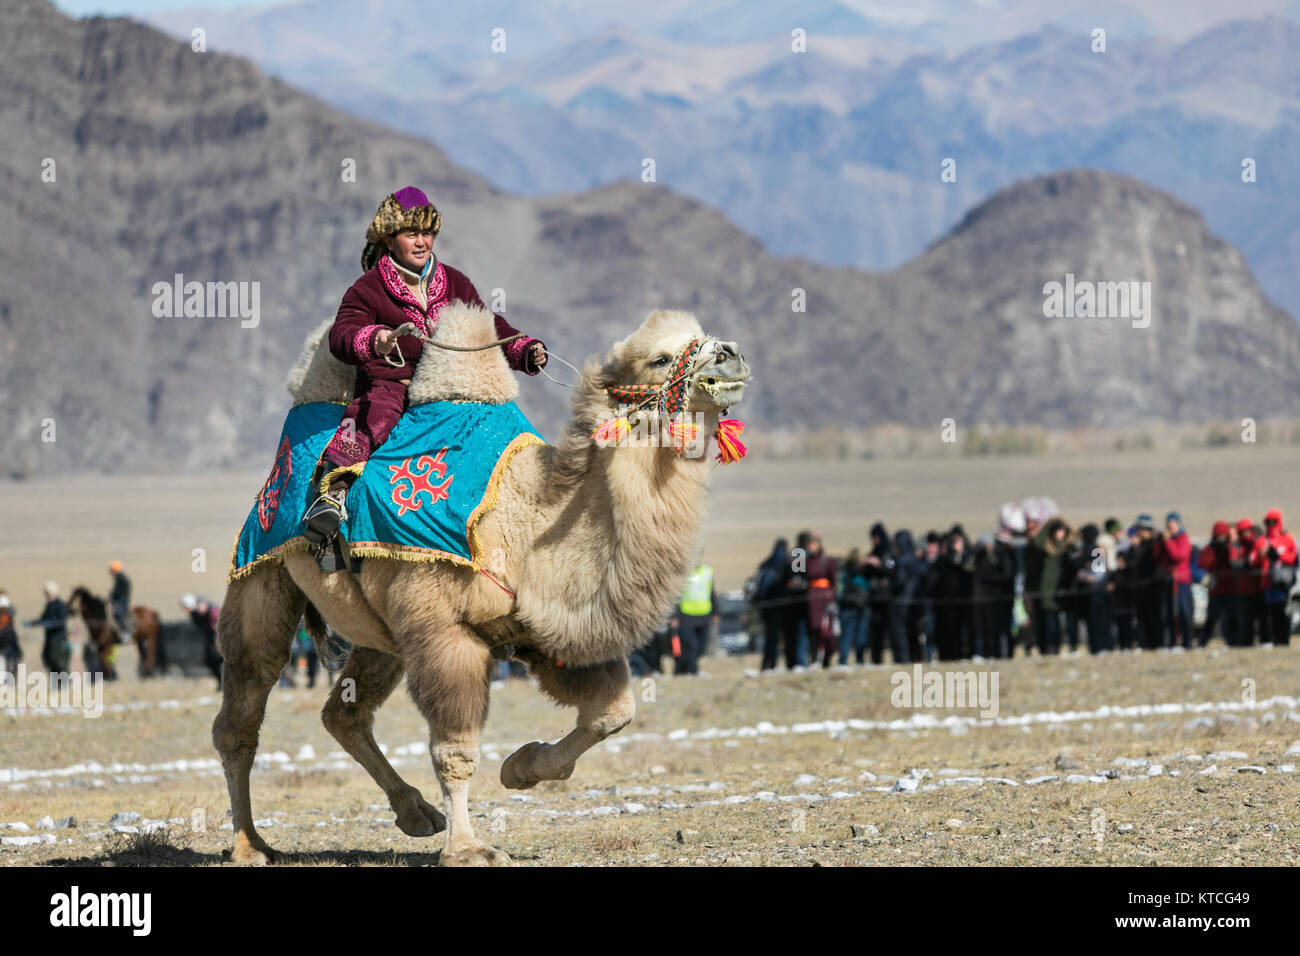 Camel rider at the Golden Eagle Festival in Mongolia - Stock Image